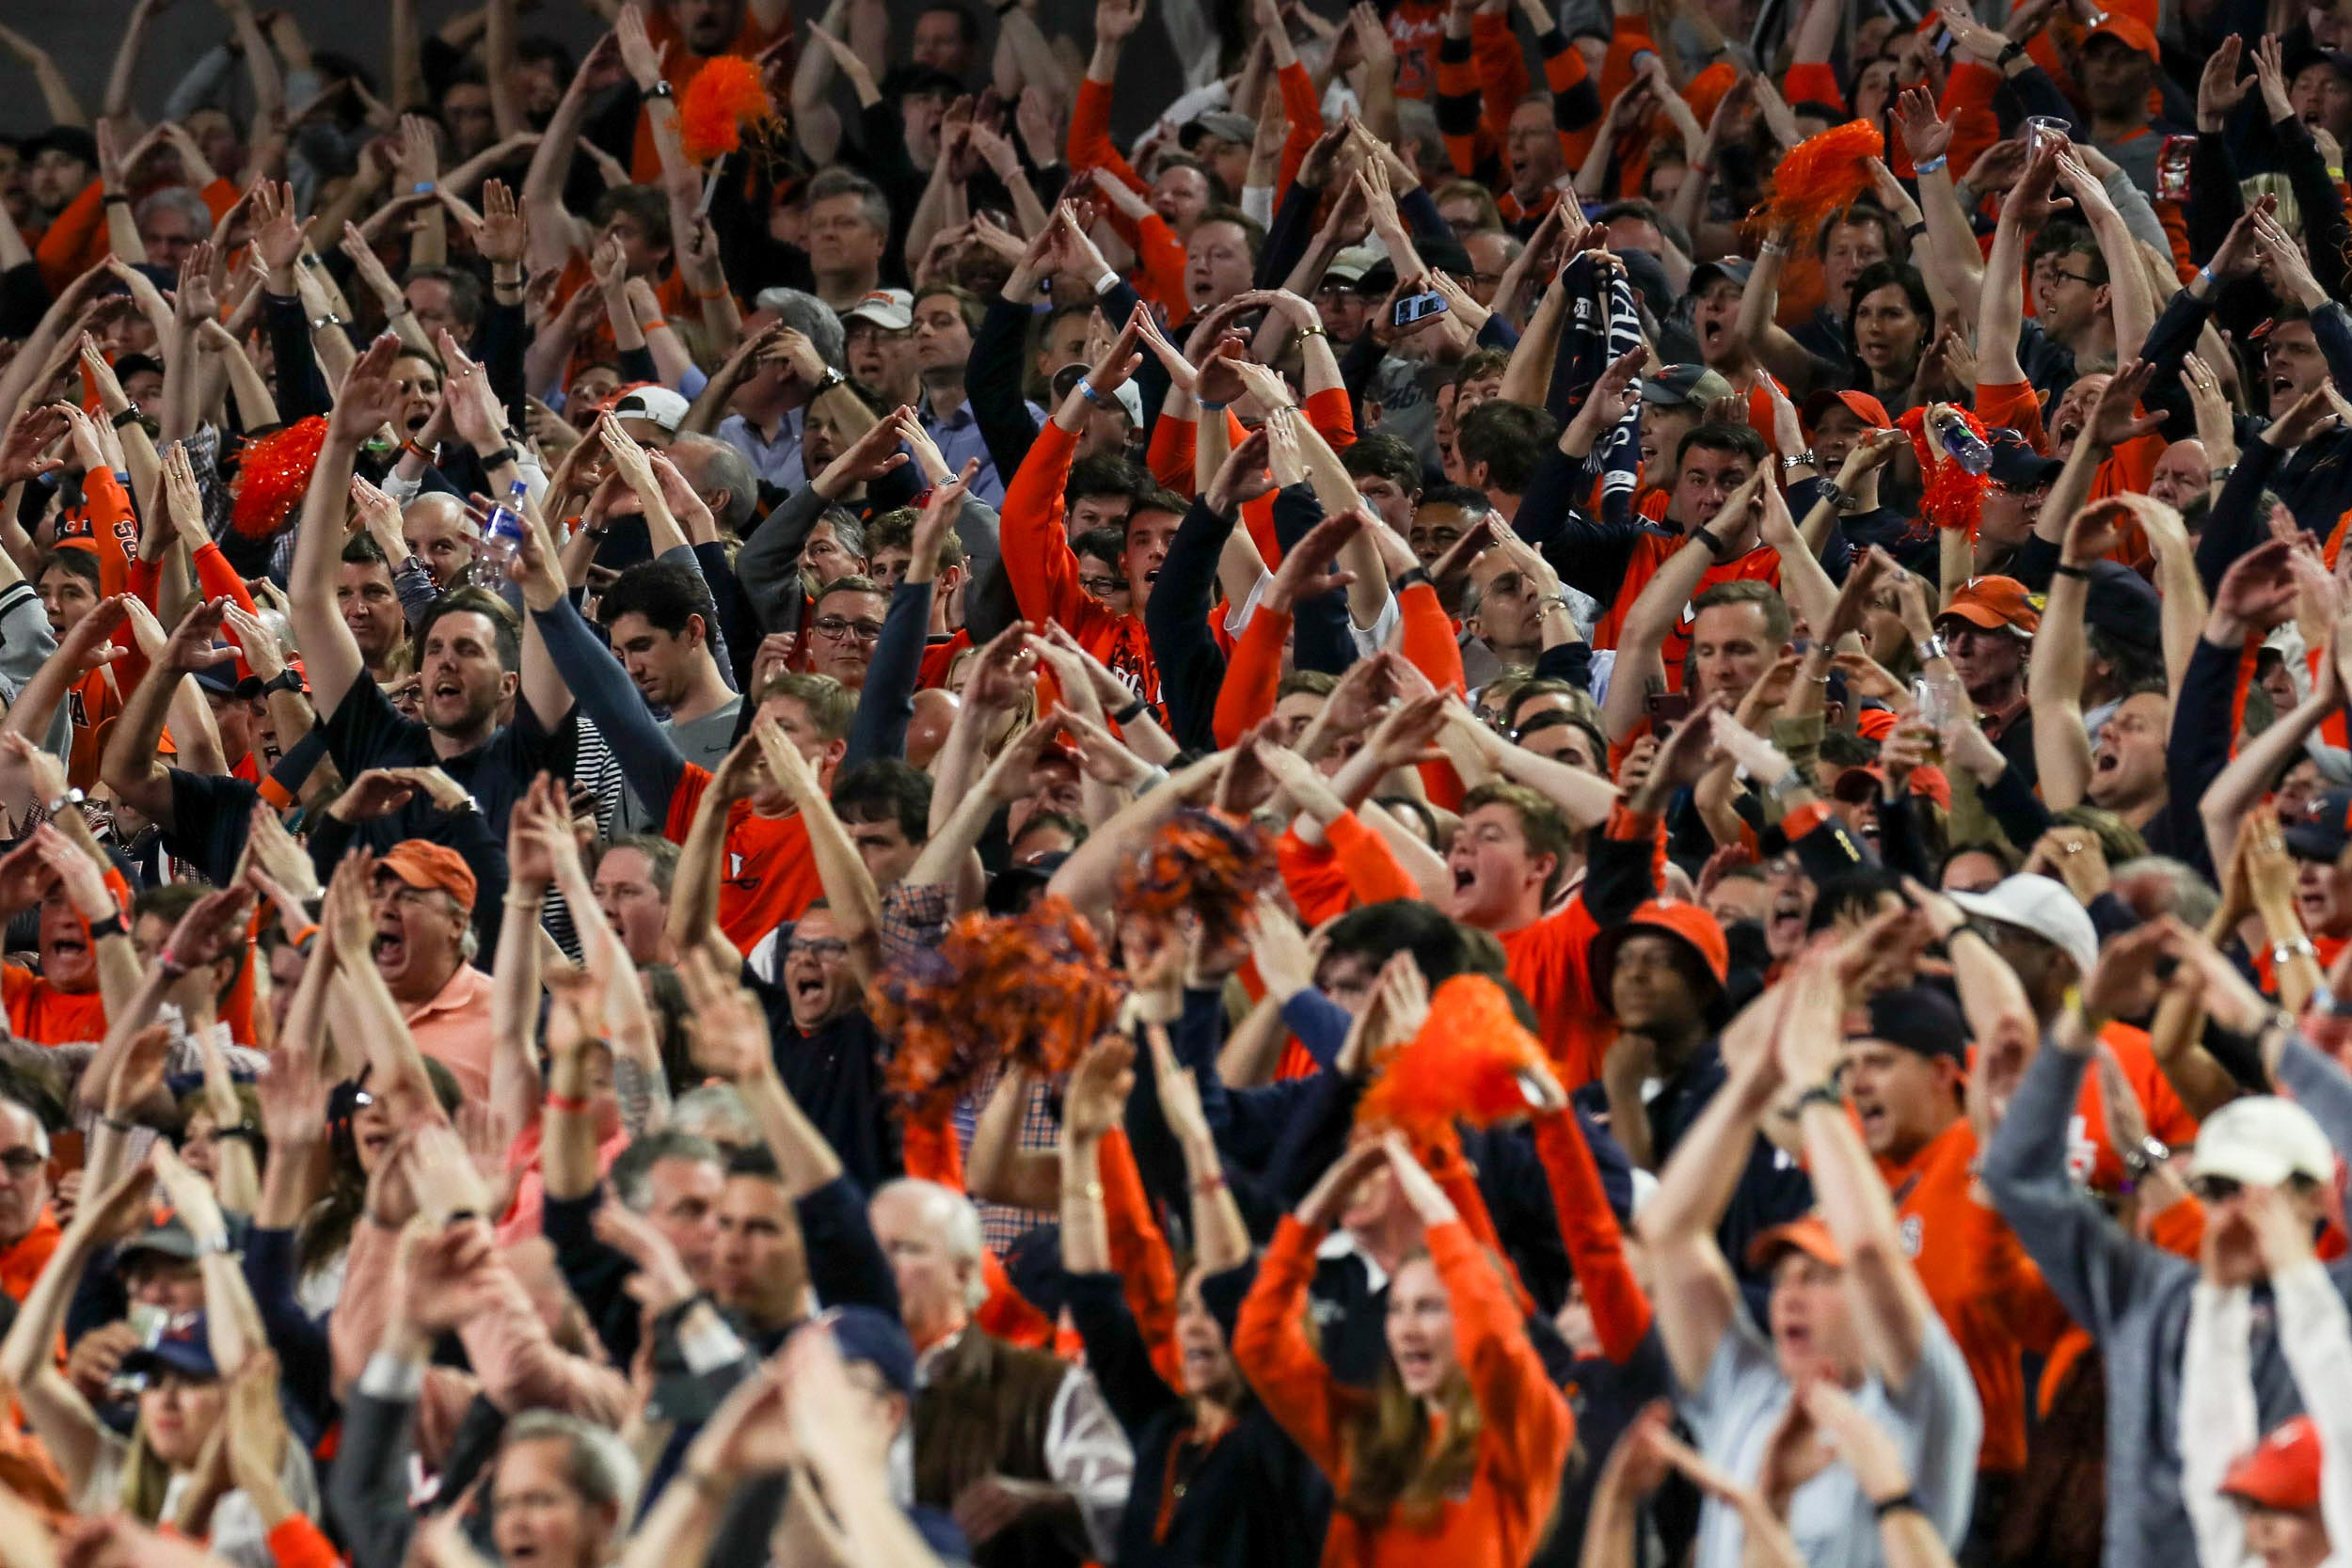 From national championships to all-academic teams, Cavalier fans had a lot to be proud of this year.